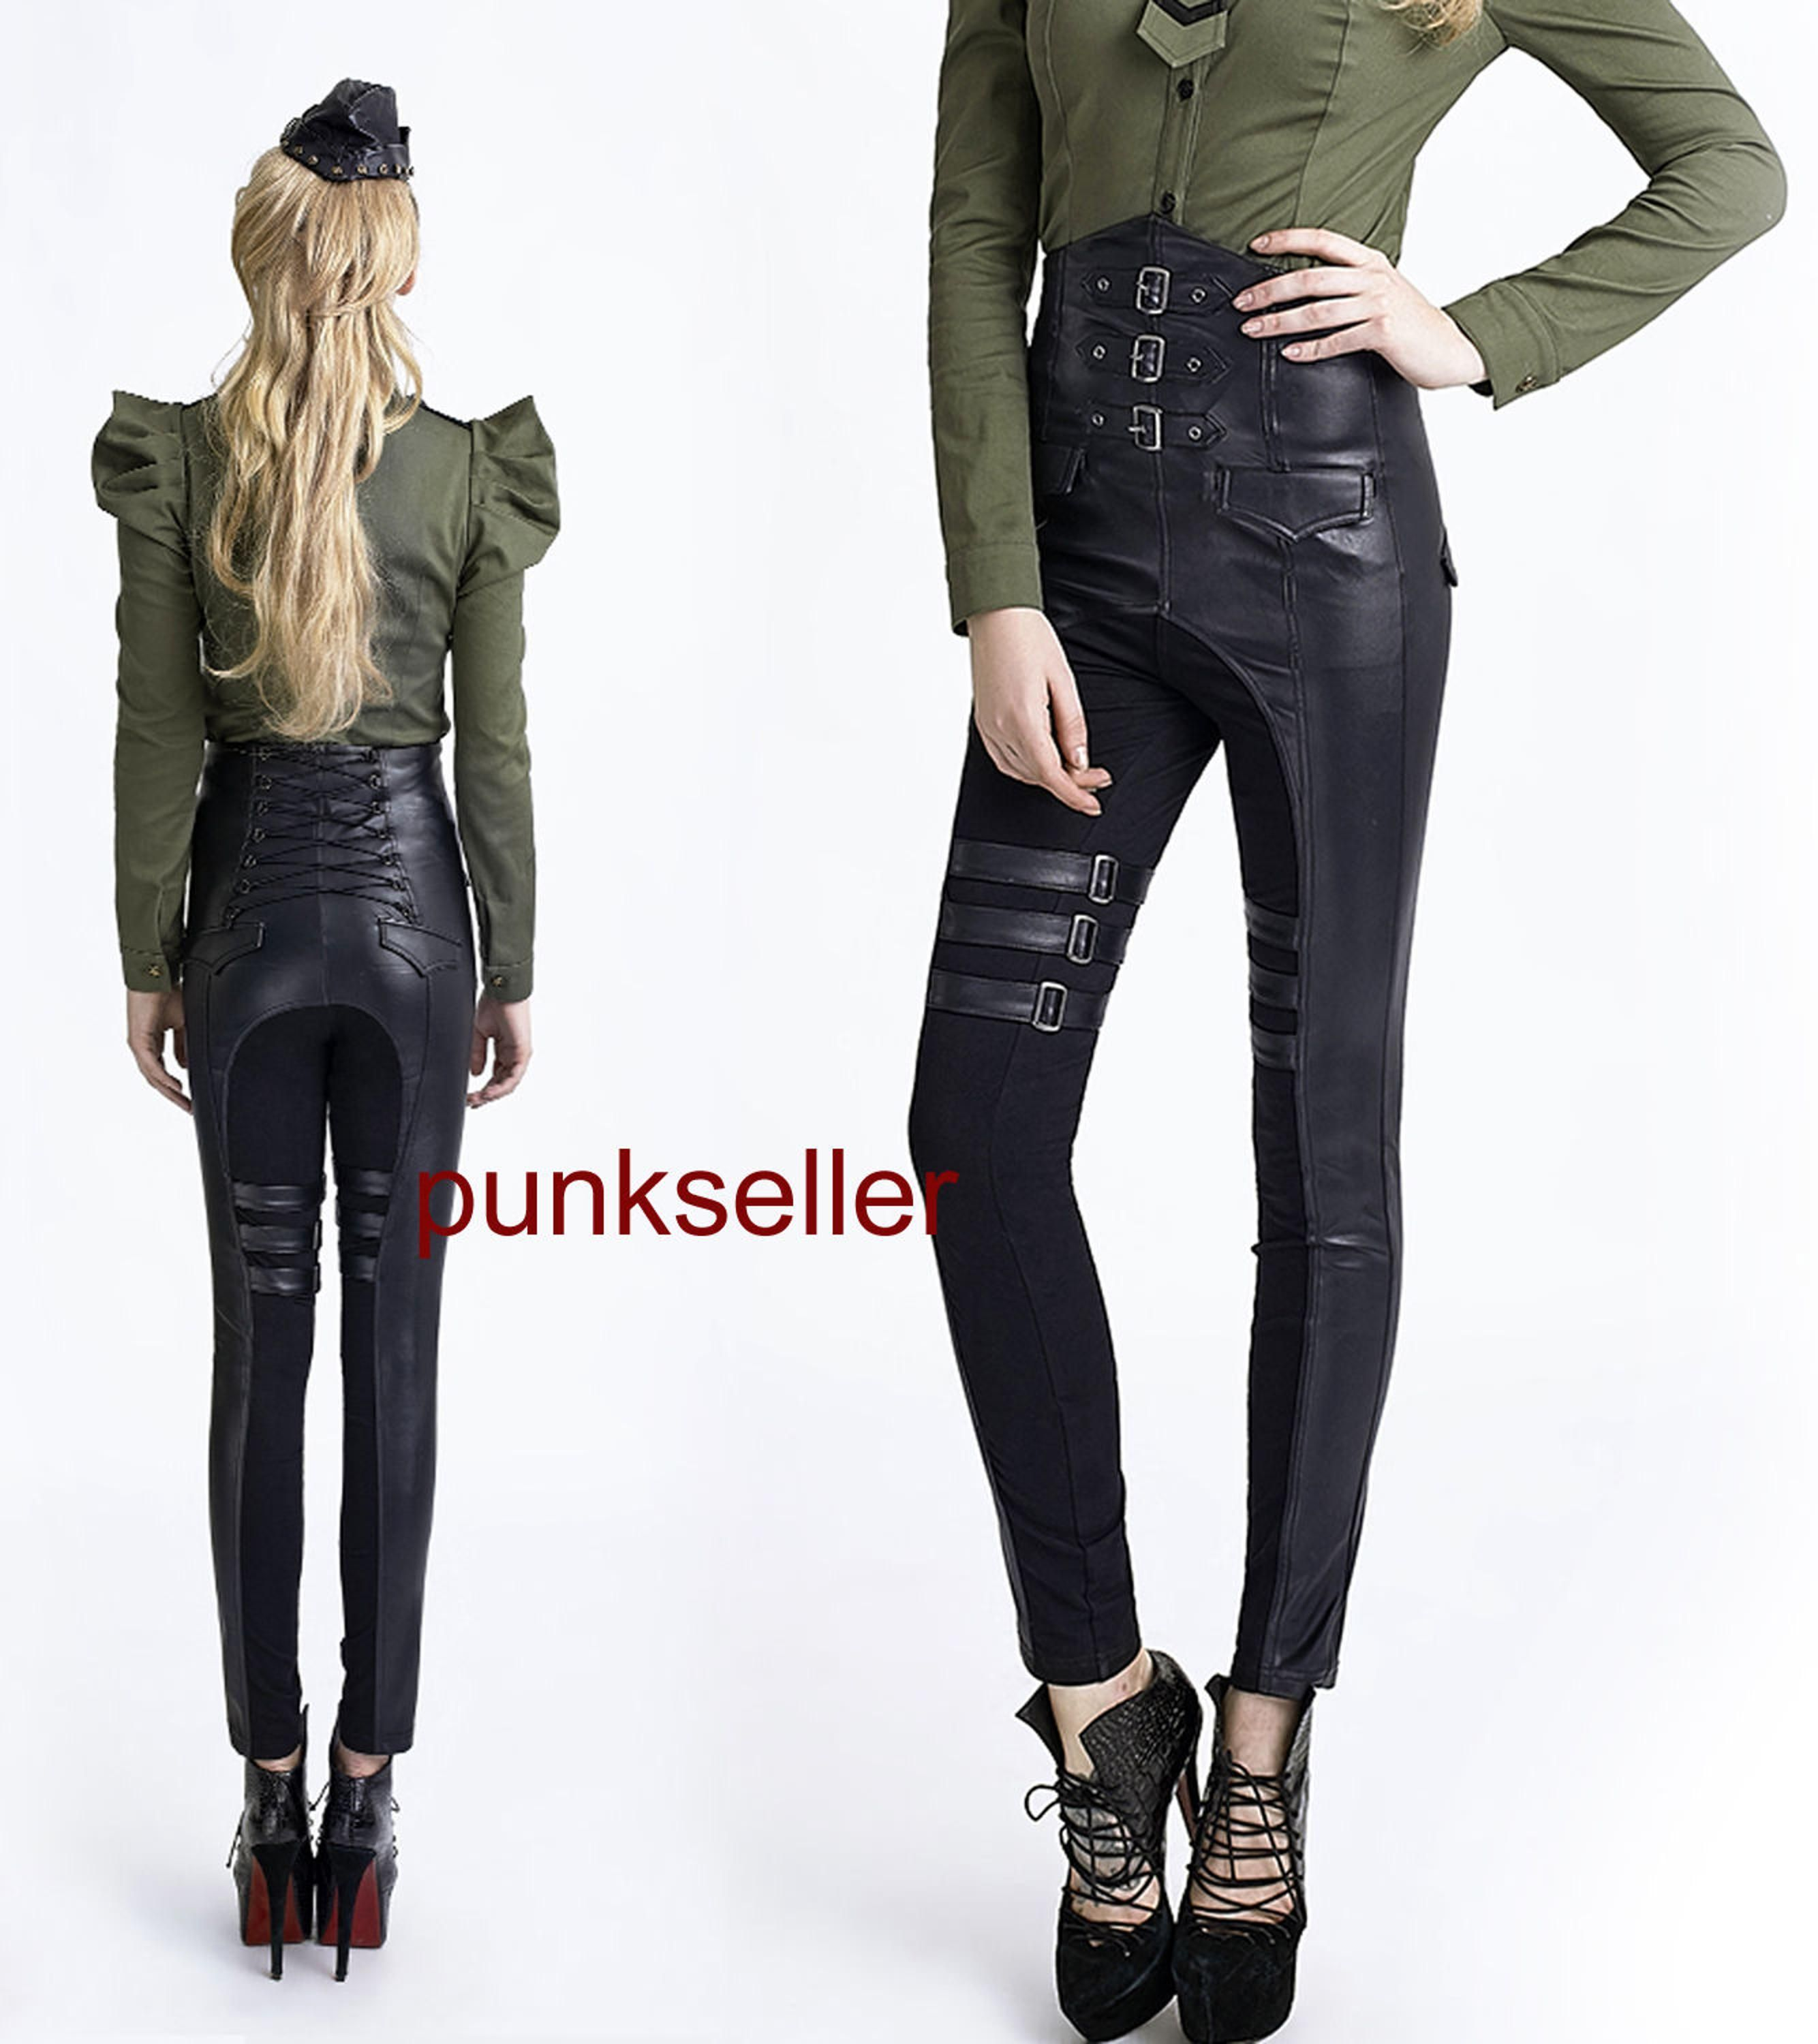 ac5901e85b Punk Gothic Rock high waist pants Gothic sexy women Unifom steampunk  trousers-in Pants & Capris from Women's Clothing & Accessories on  Aliexpress.com ...